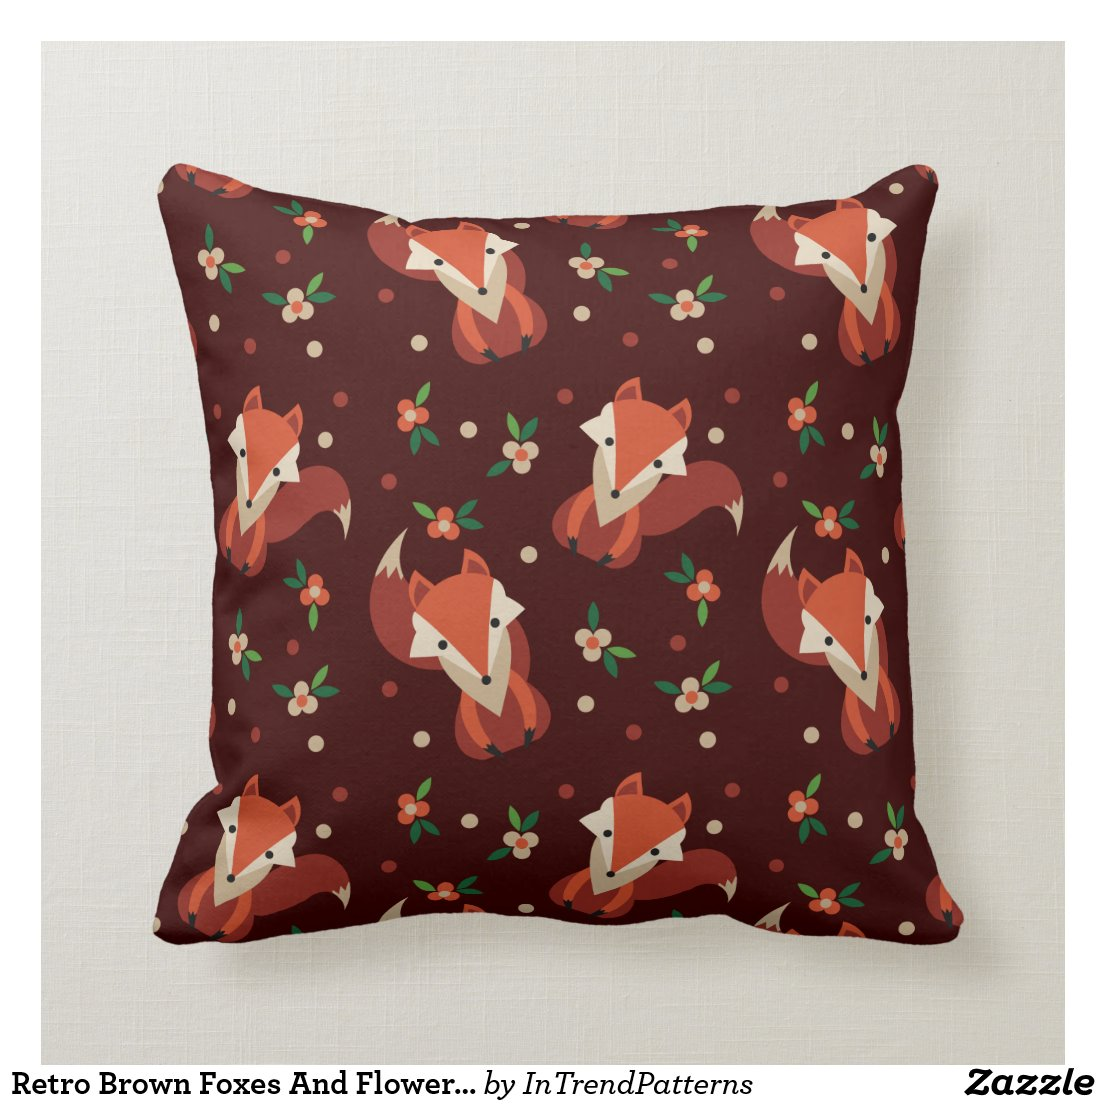 Retro Brown Foxes And Flowers Pattern Cushion